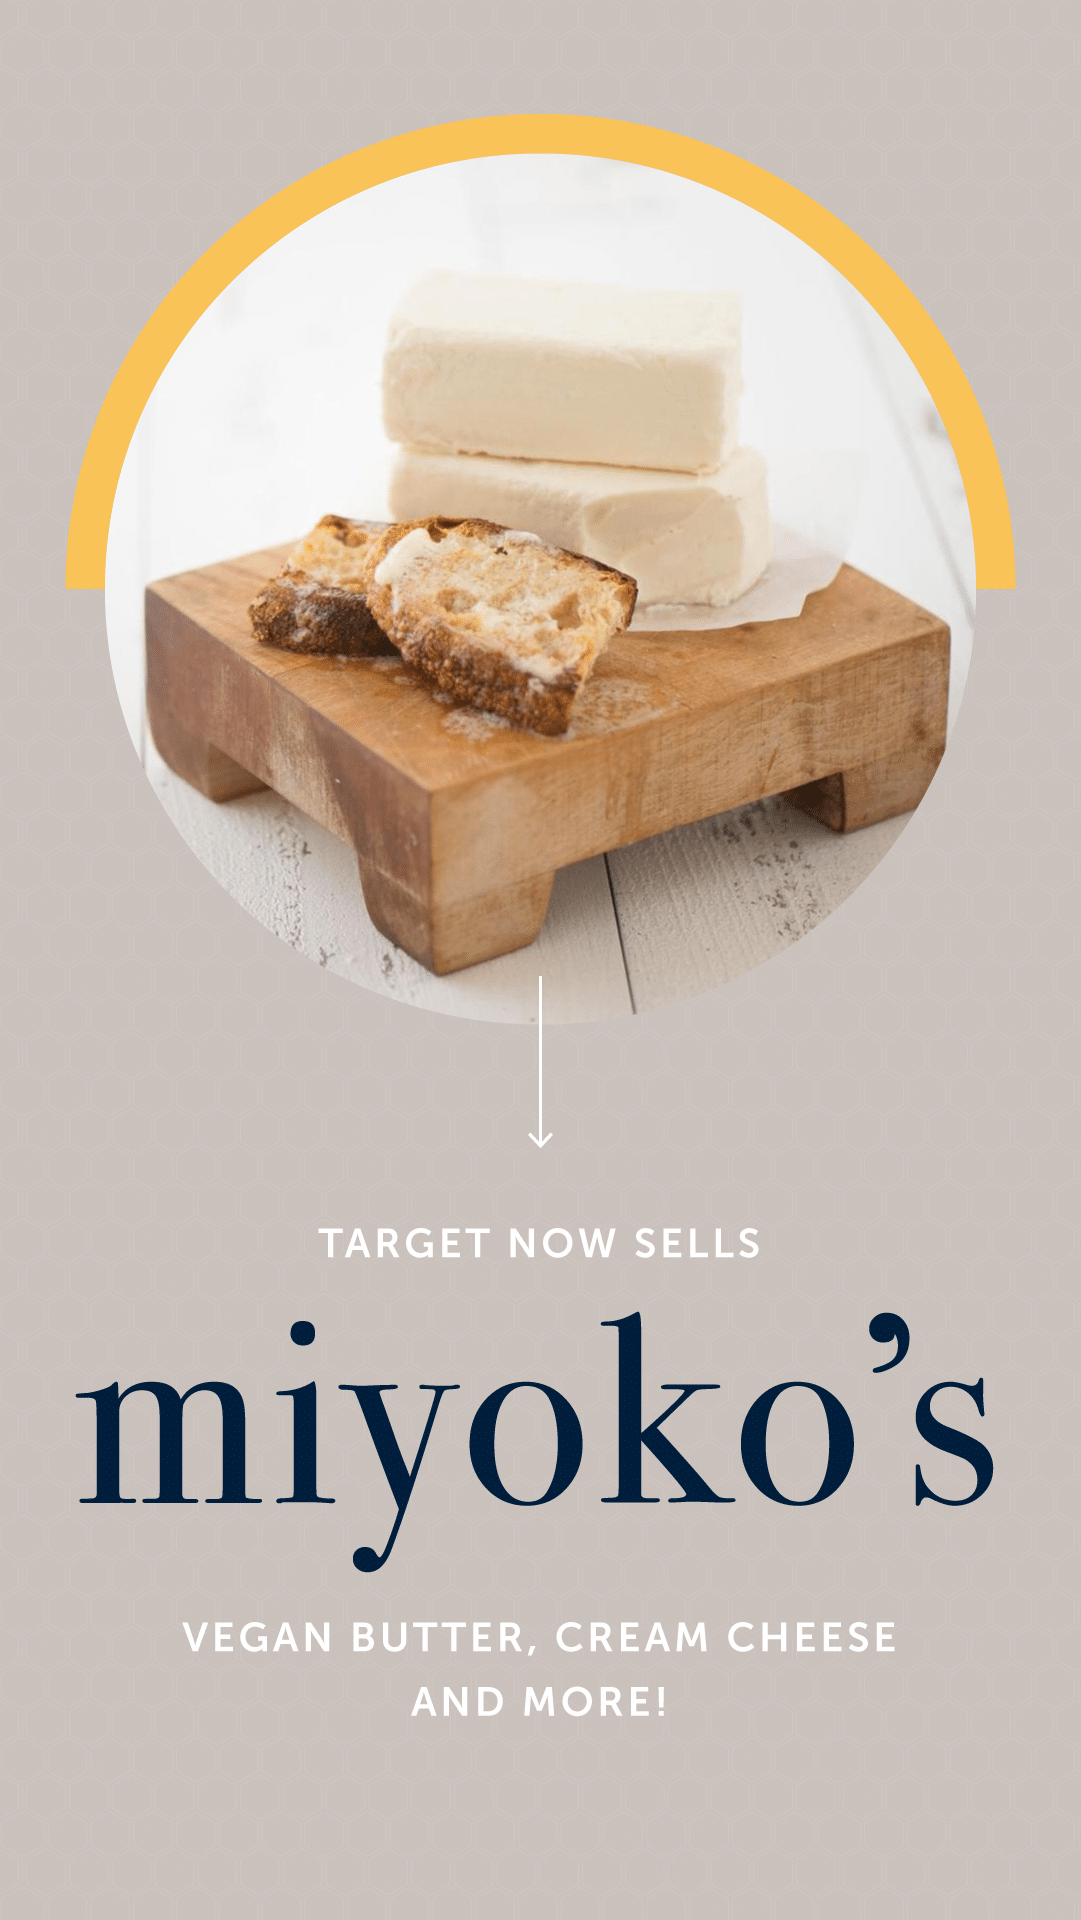 Target Now Sells Miyoko's Vegan Butter, Cream Cheese, and More